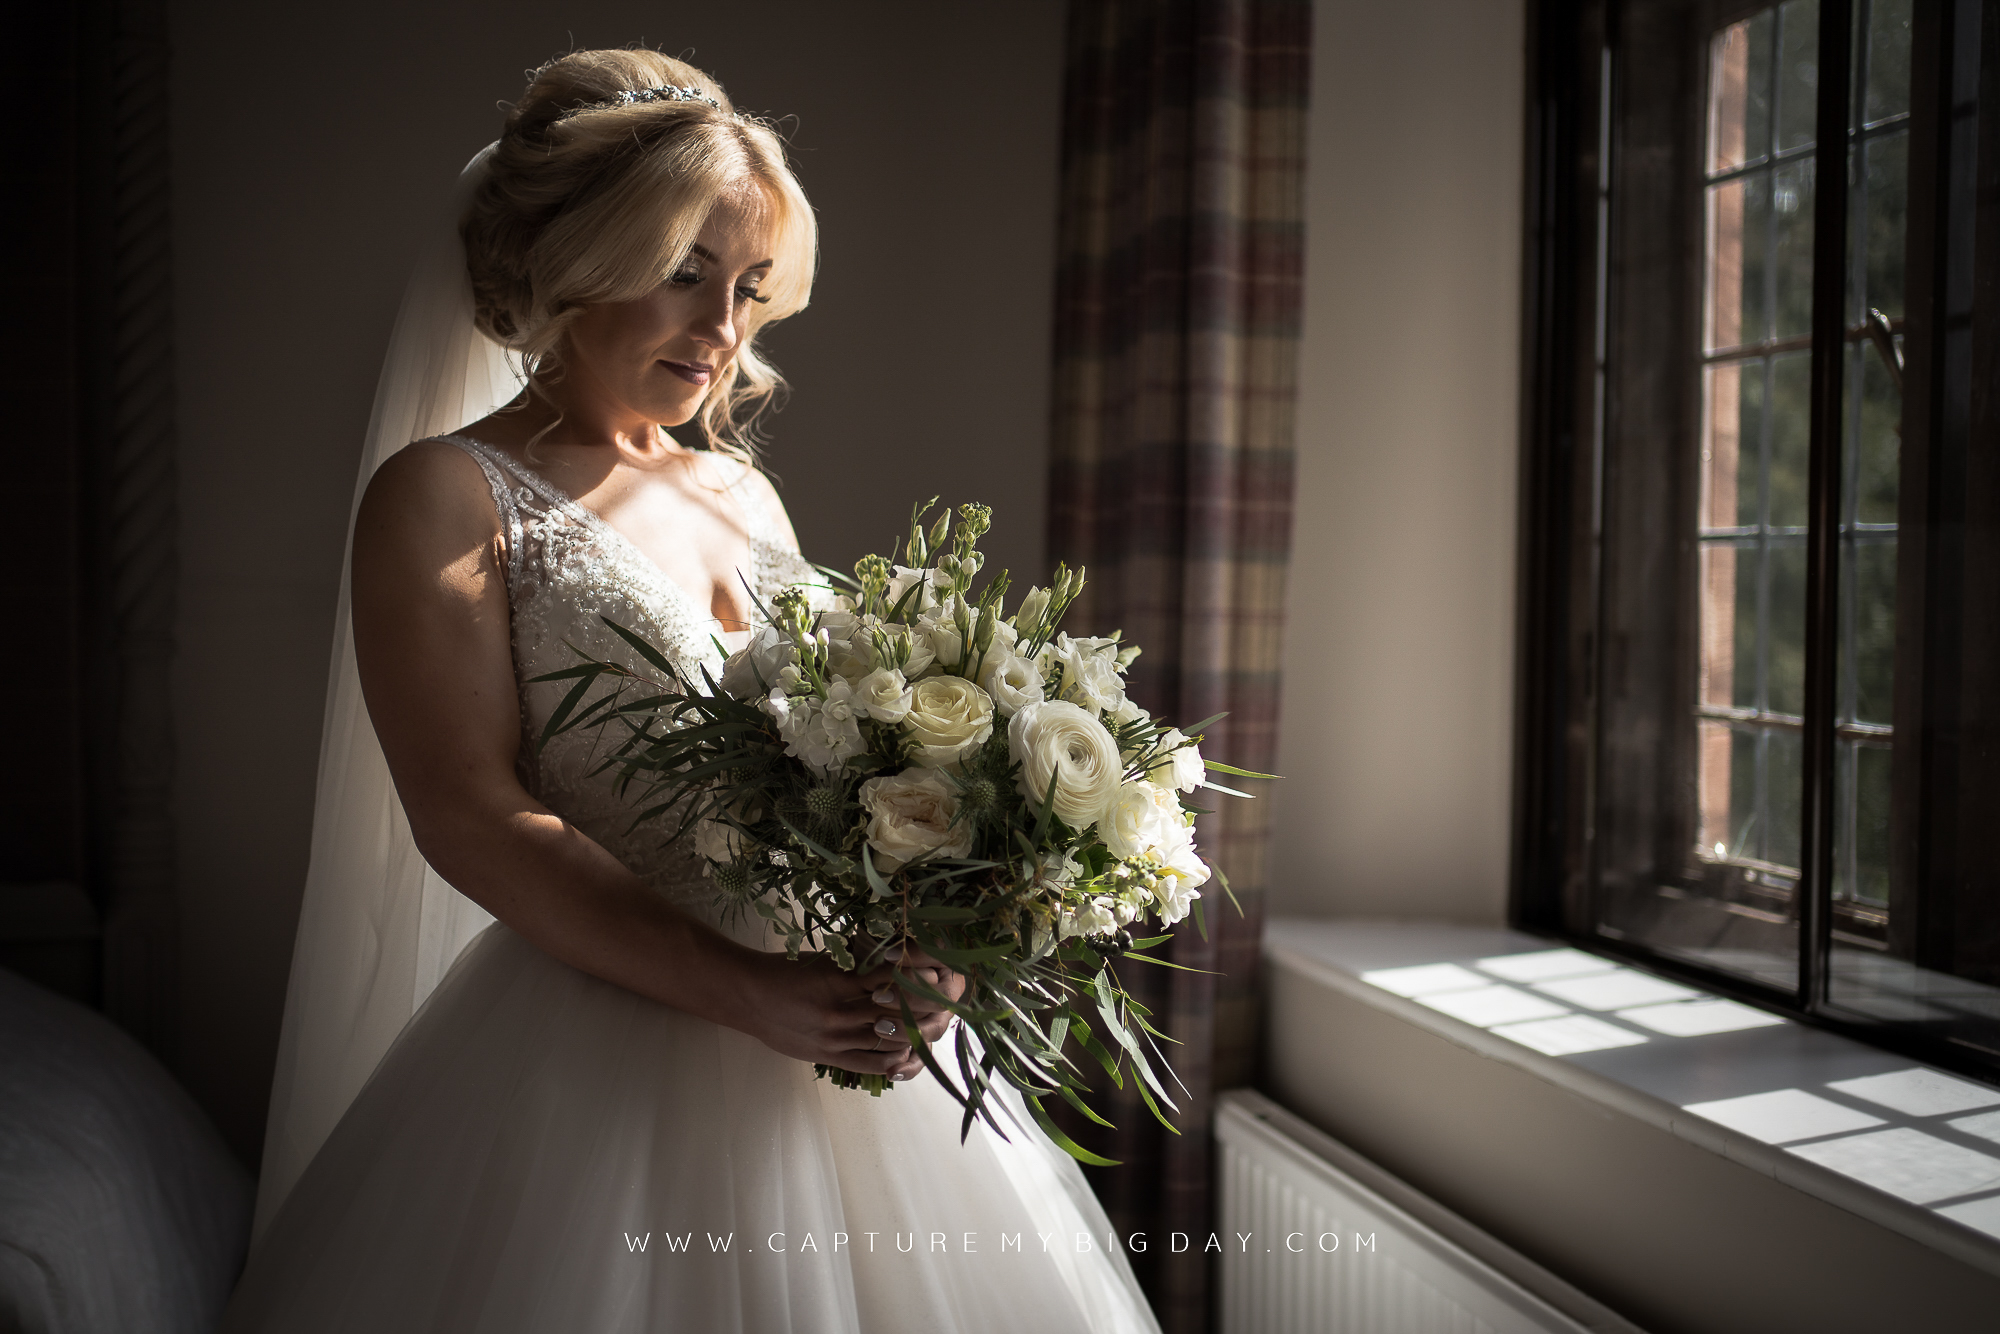 Bride looking at flowers next to window